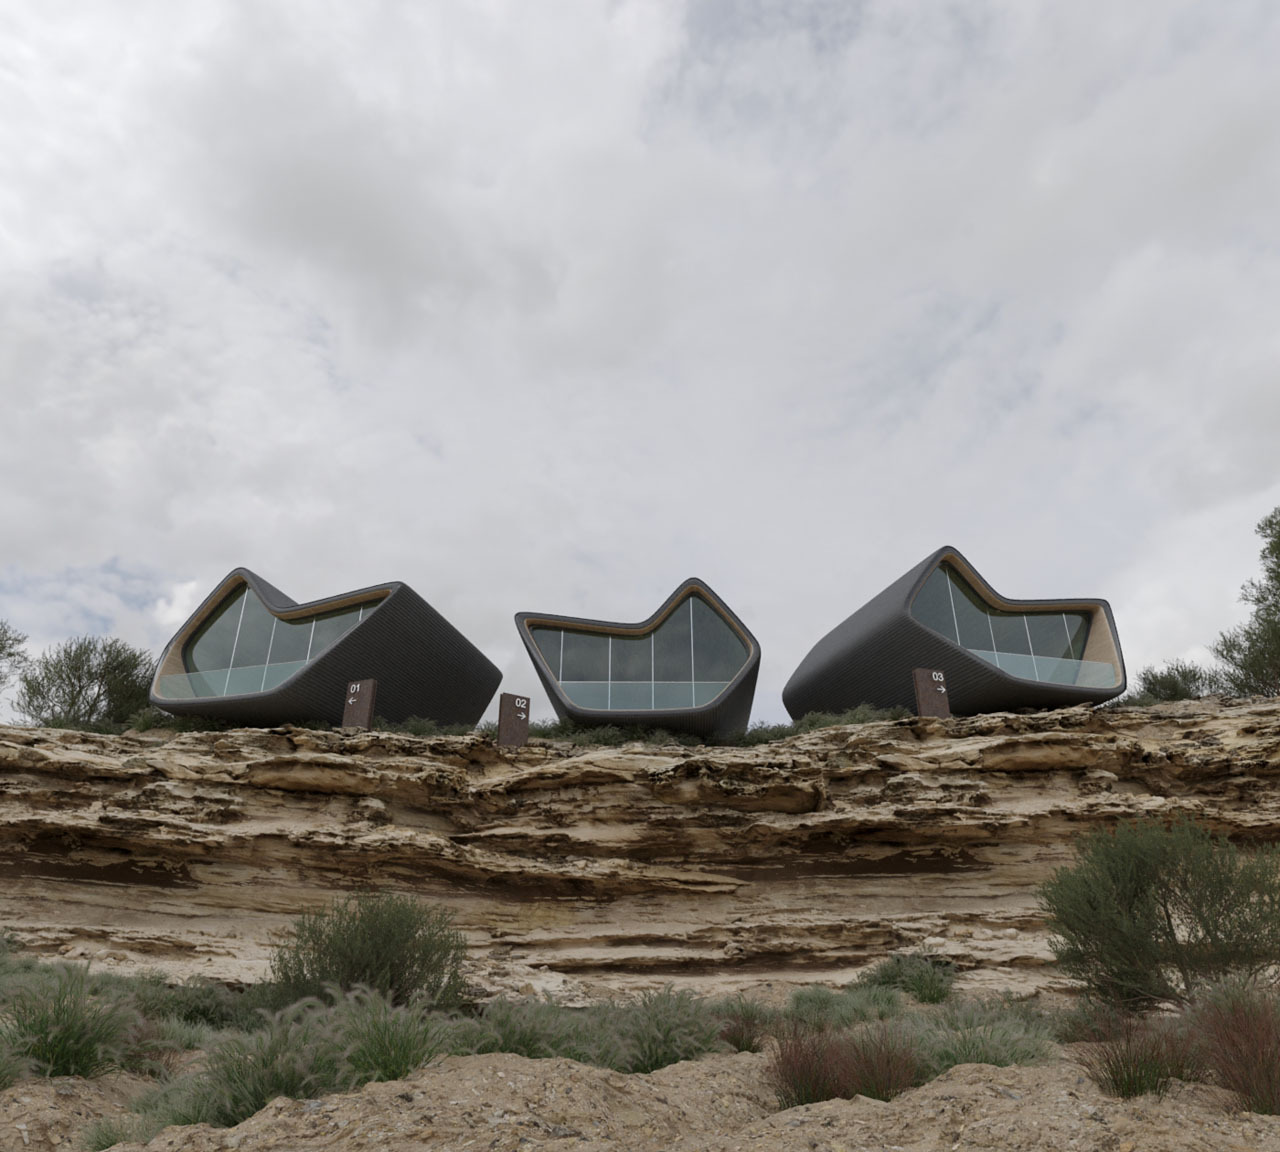 Cliff-shaped cabins in Saudi Arabia